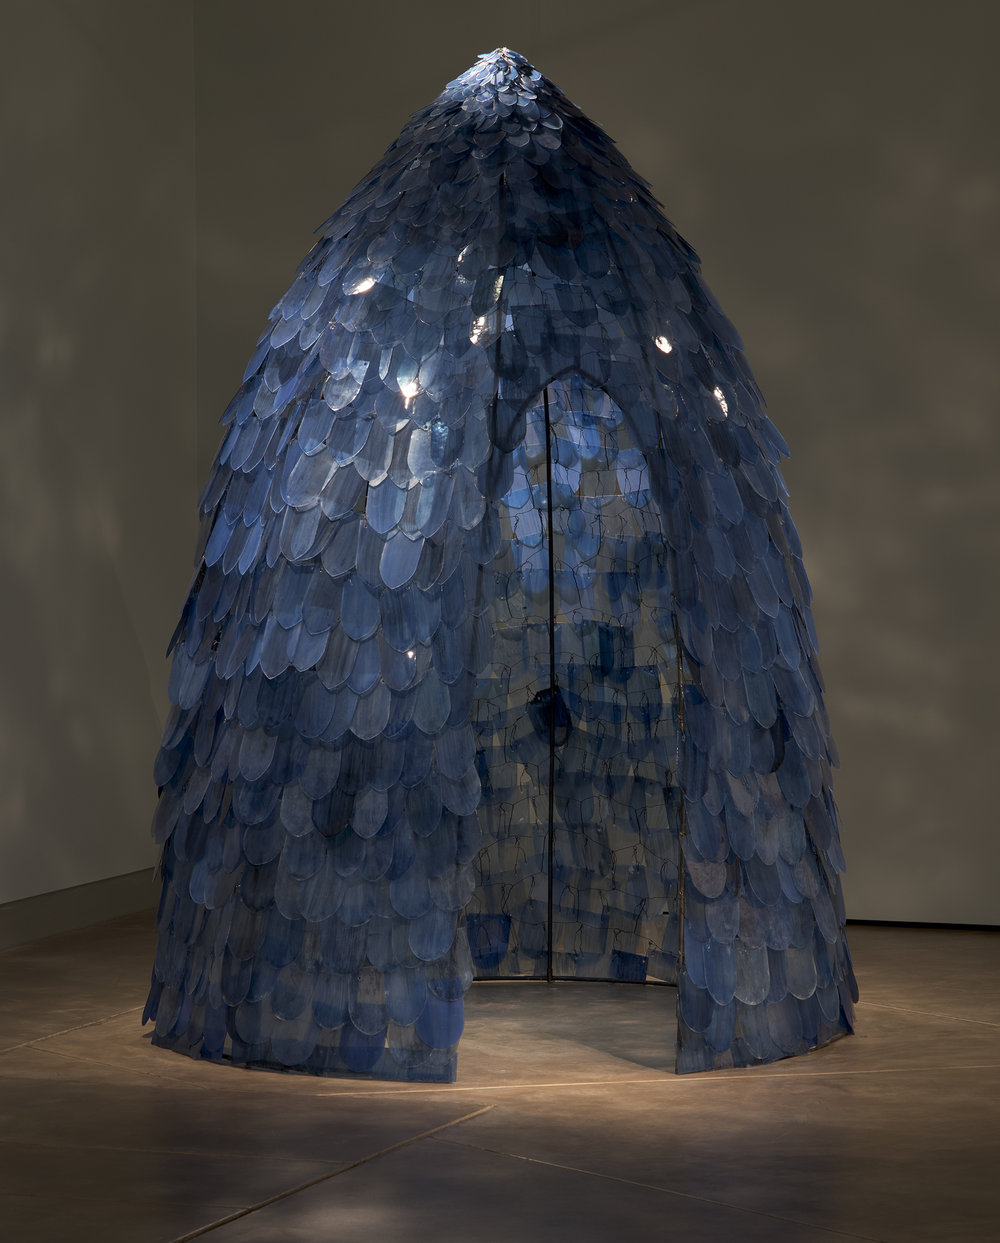 Kait Rhoads (American, born 1968).  Blue Dome,  1995. Single strength plate glass, cut, drilled and fired with glass enamels; then hung by steel wire onto a steel form. Collection of the artist. Photo courtesy of the artist.